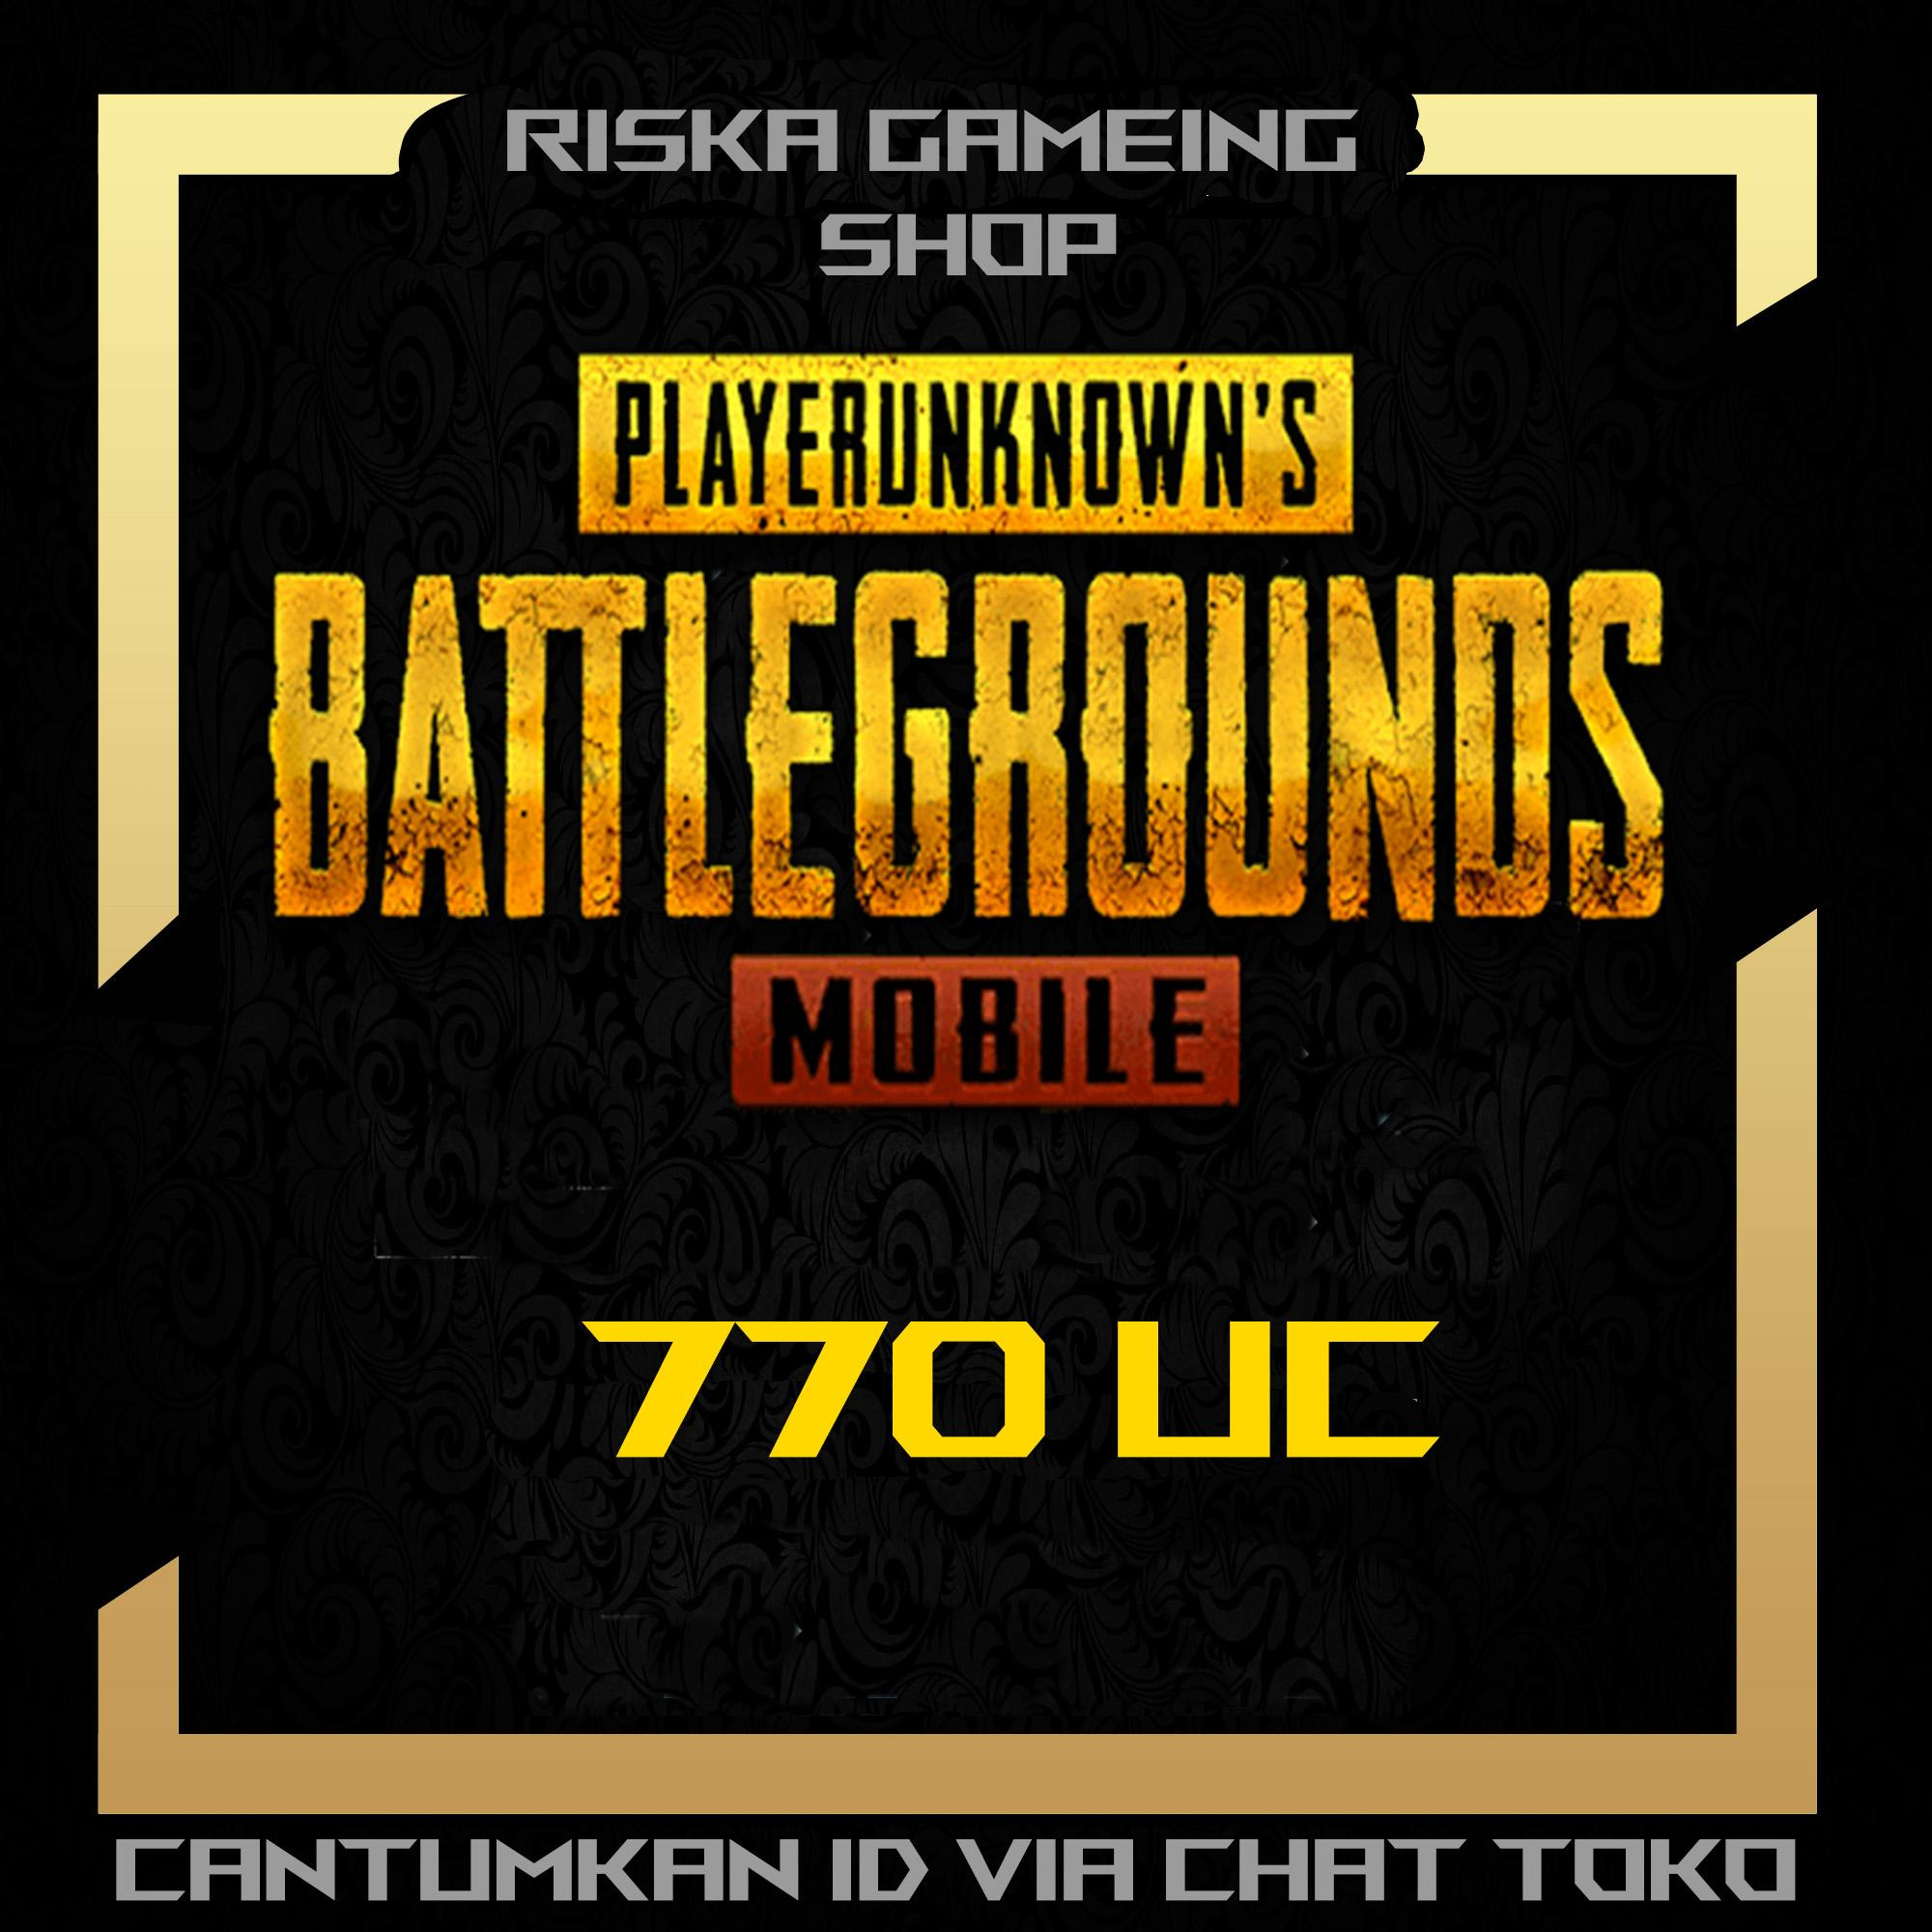 PlayerUnknown's Battlegrounds (PUBG) Mobile 770 UC Cash - Legal Via ID